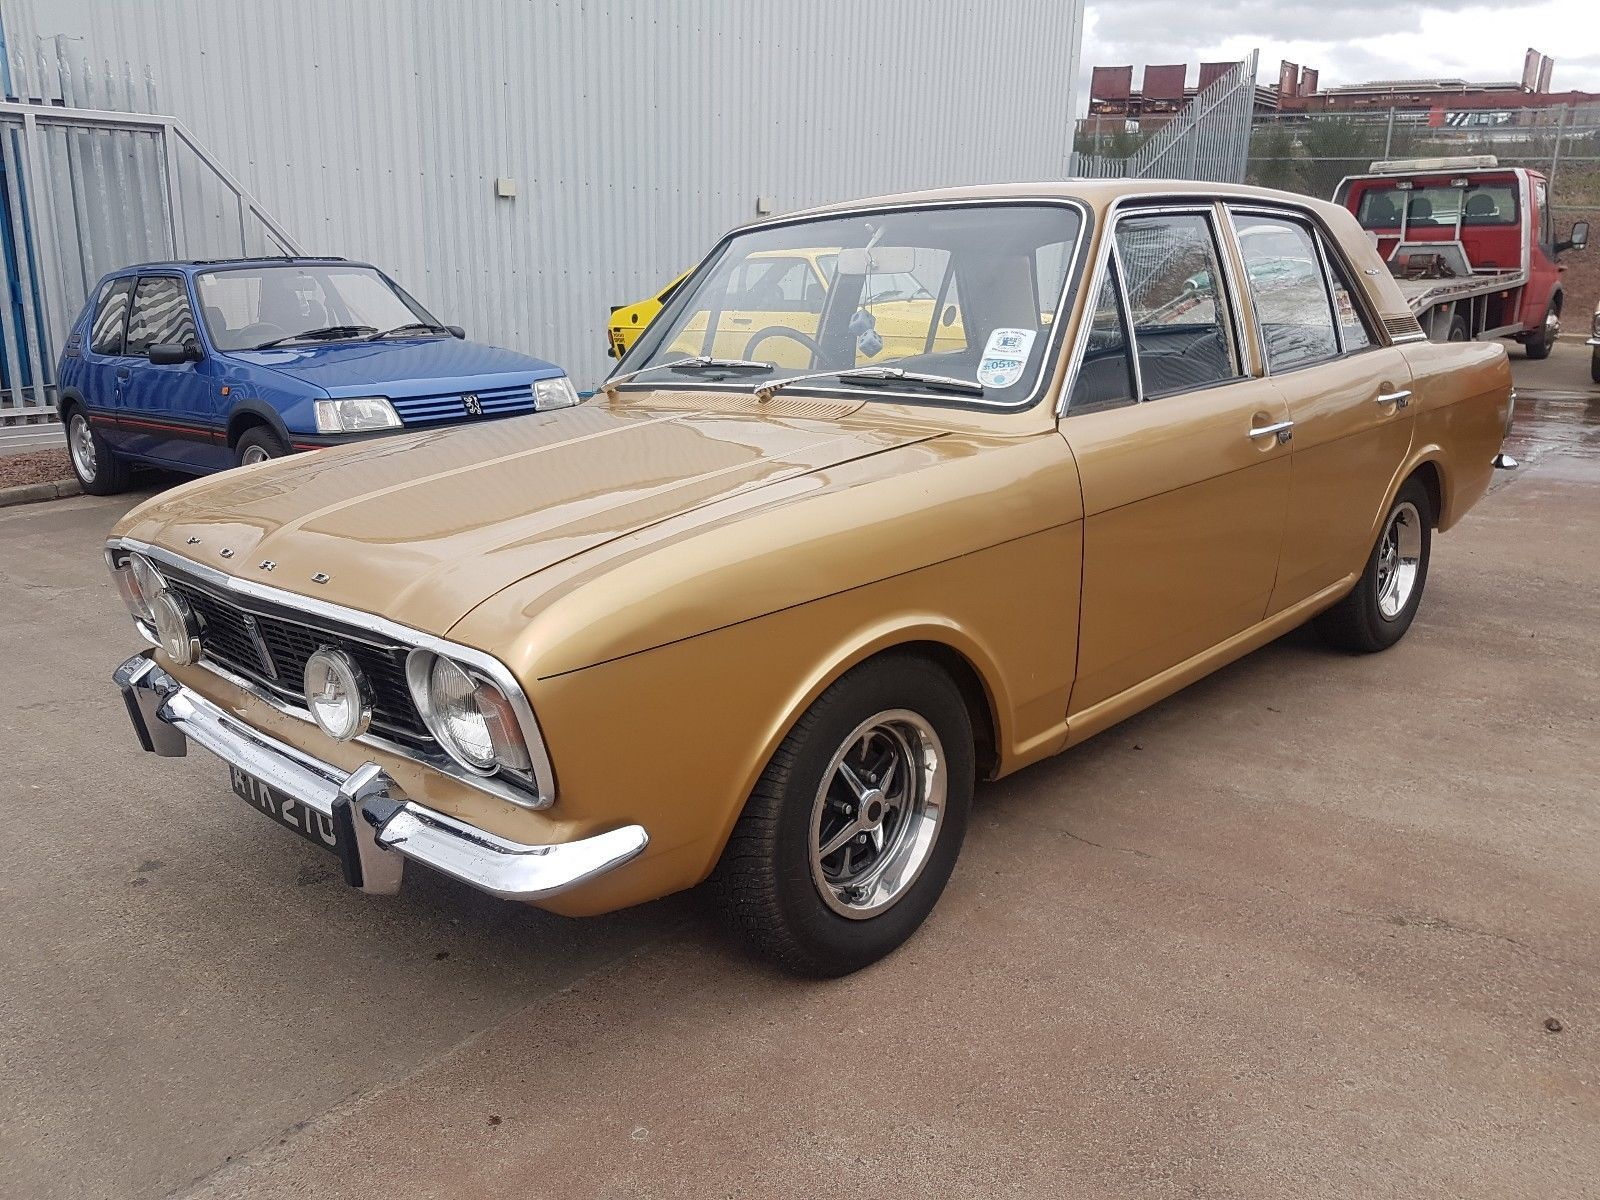 Ebay 1970 Ford Cortina 1600e Gold 50k Miles Last Owner Since 2003 Classiccars Cars Ford Classic Cars Ebay